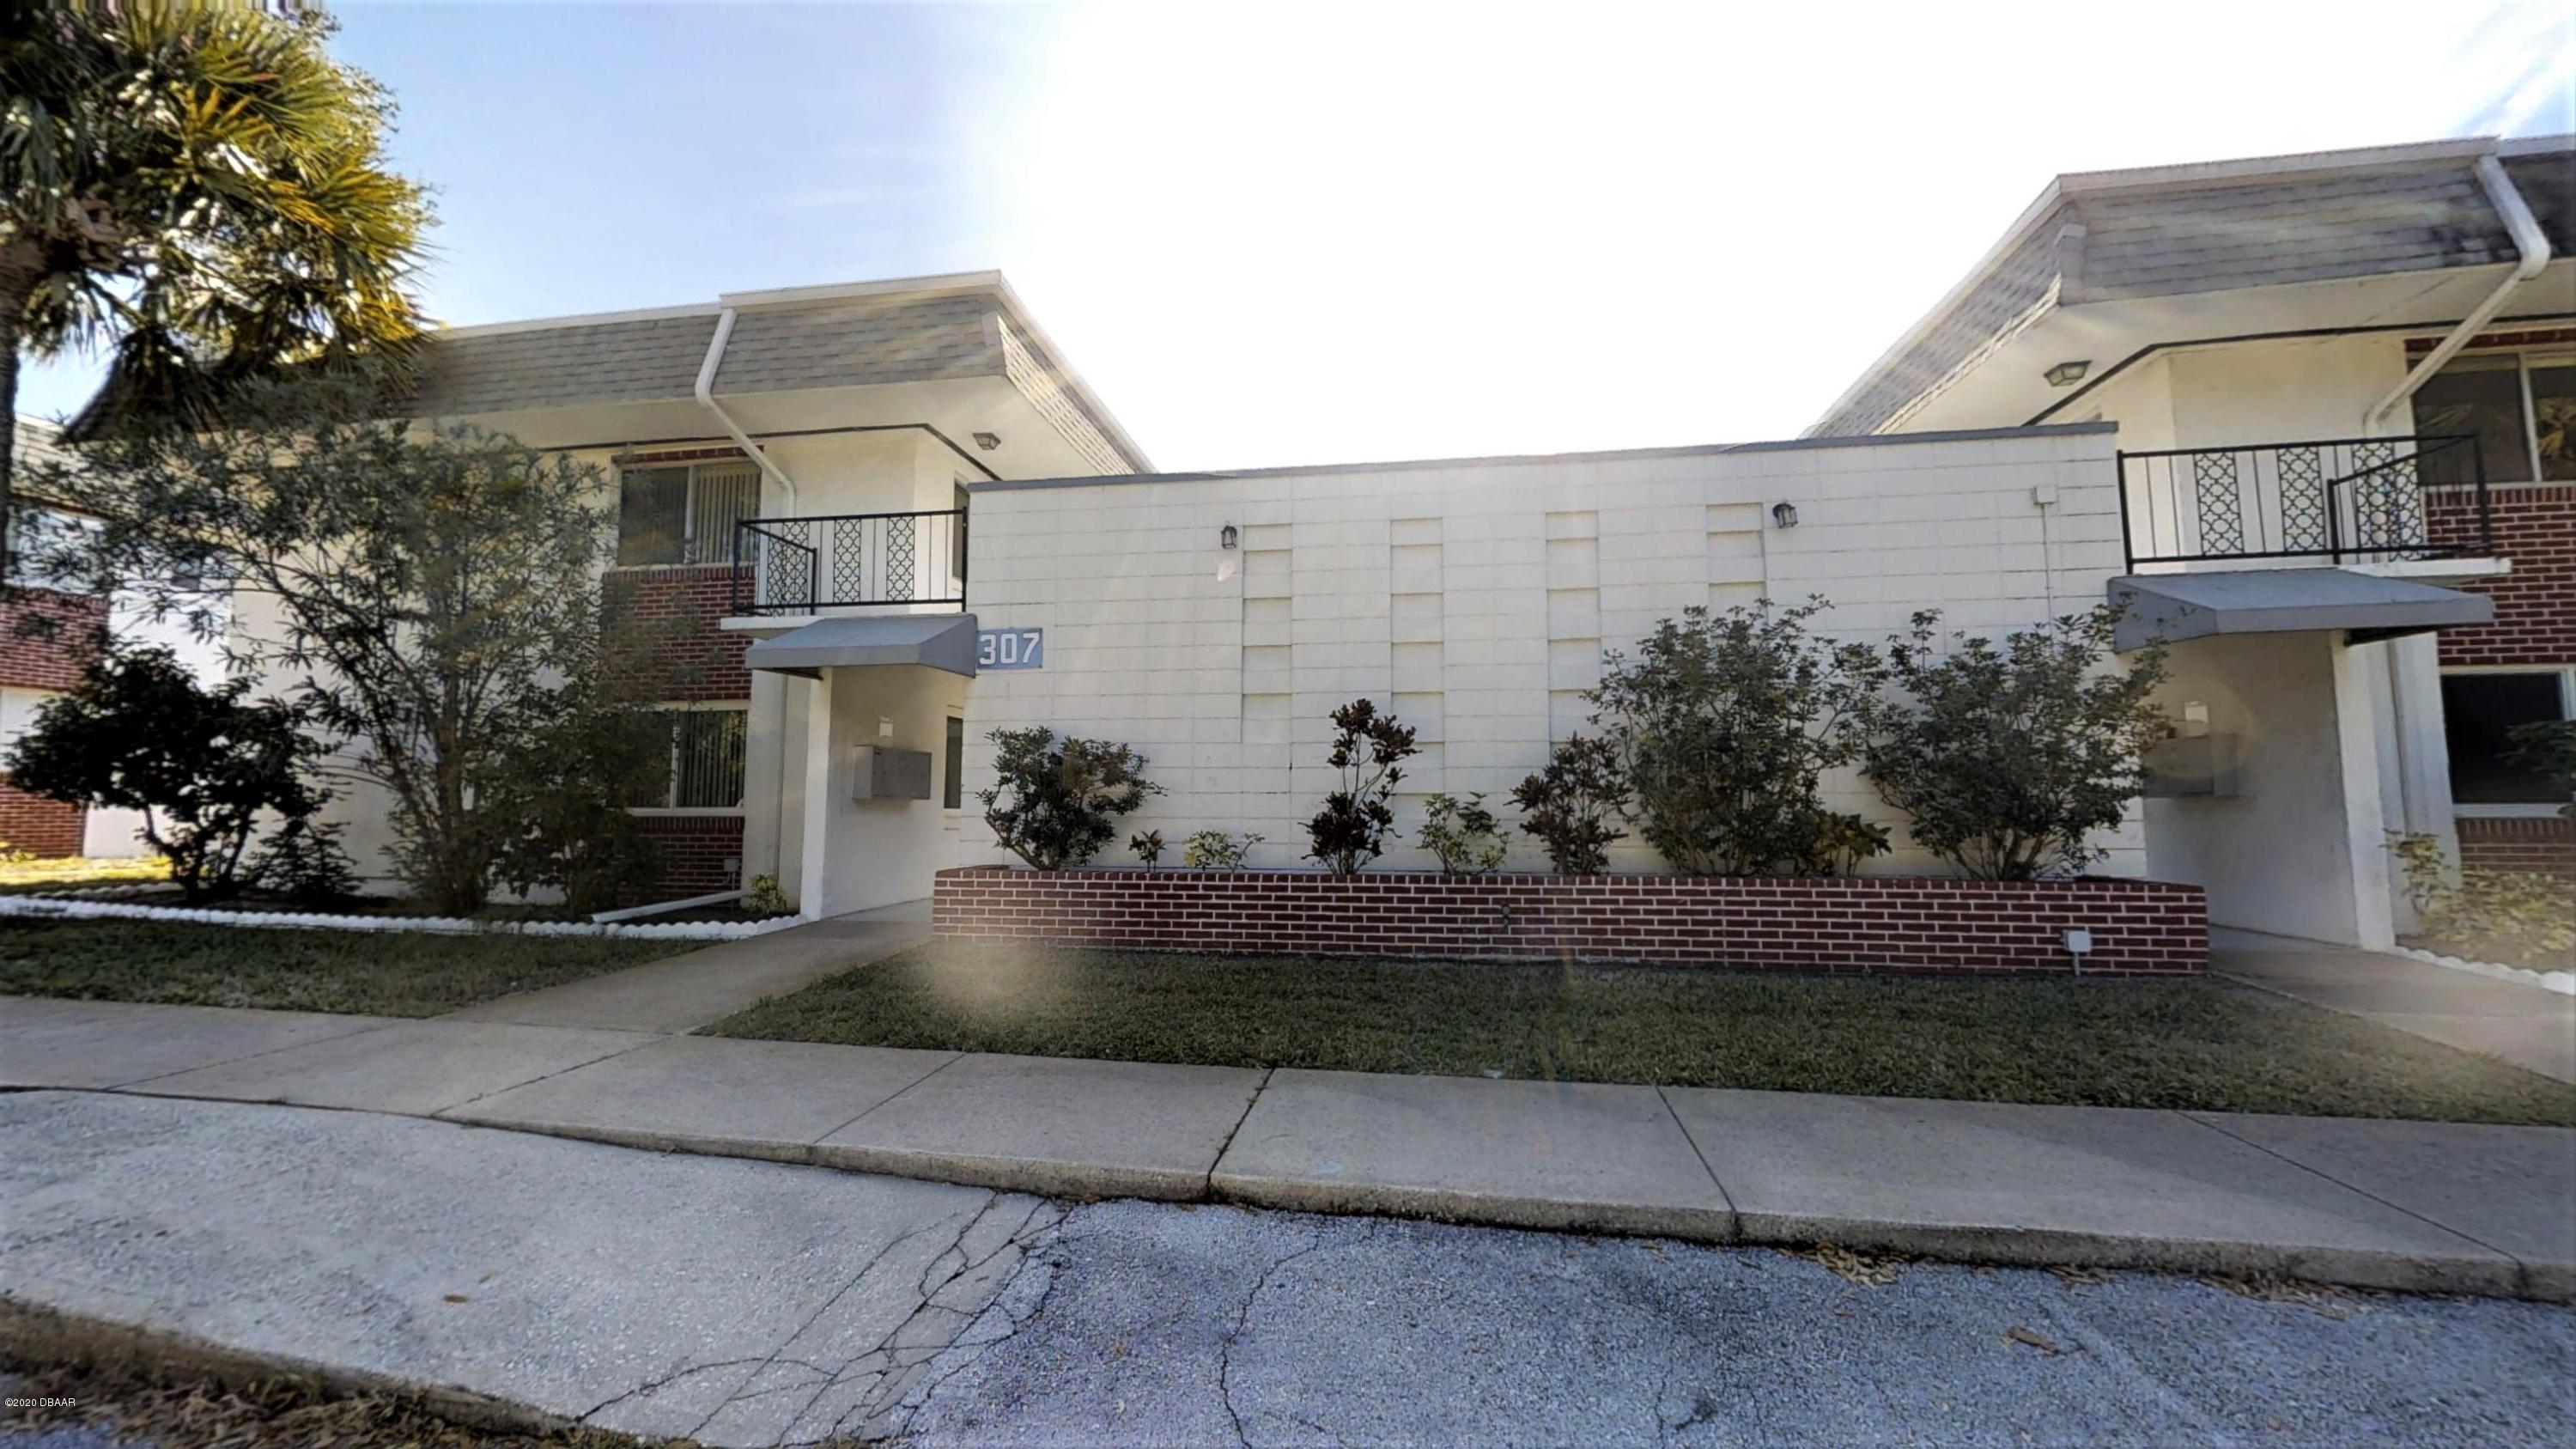 One of South Daytona 2 Bedroom Homes for Sale at 307 Ridge Blvd